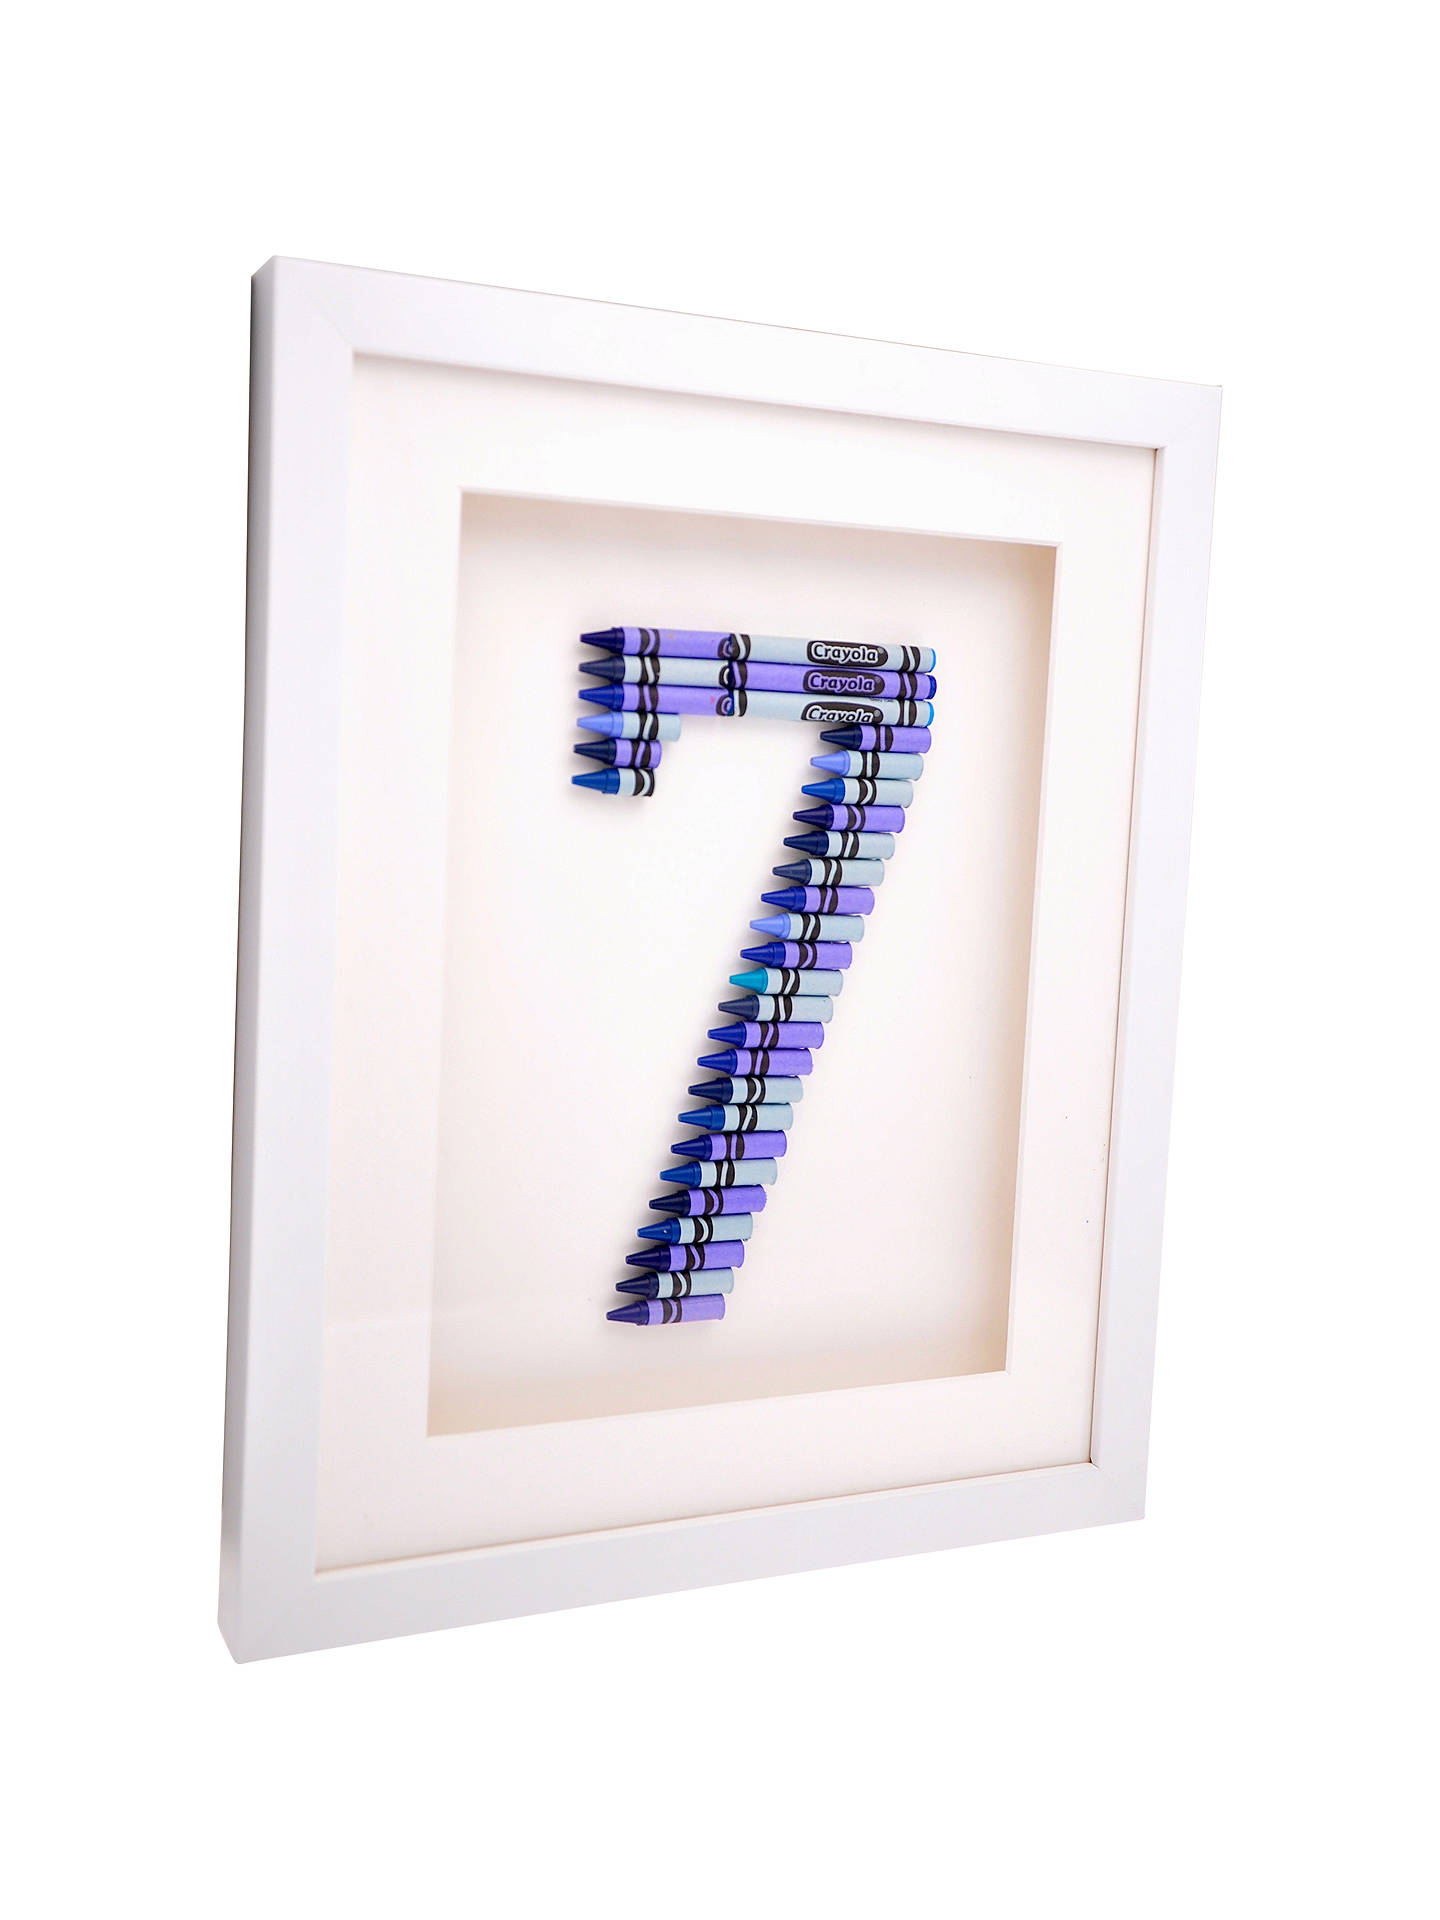 Buy The Letteroom Crayon 7 Framed 3D Artwork, 34 x 29cm Online at johnlewis.com